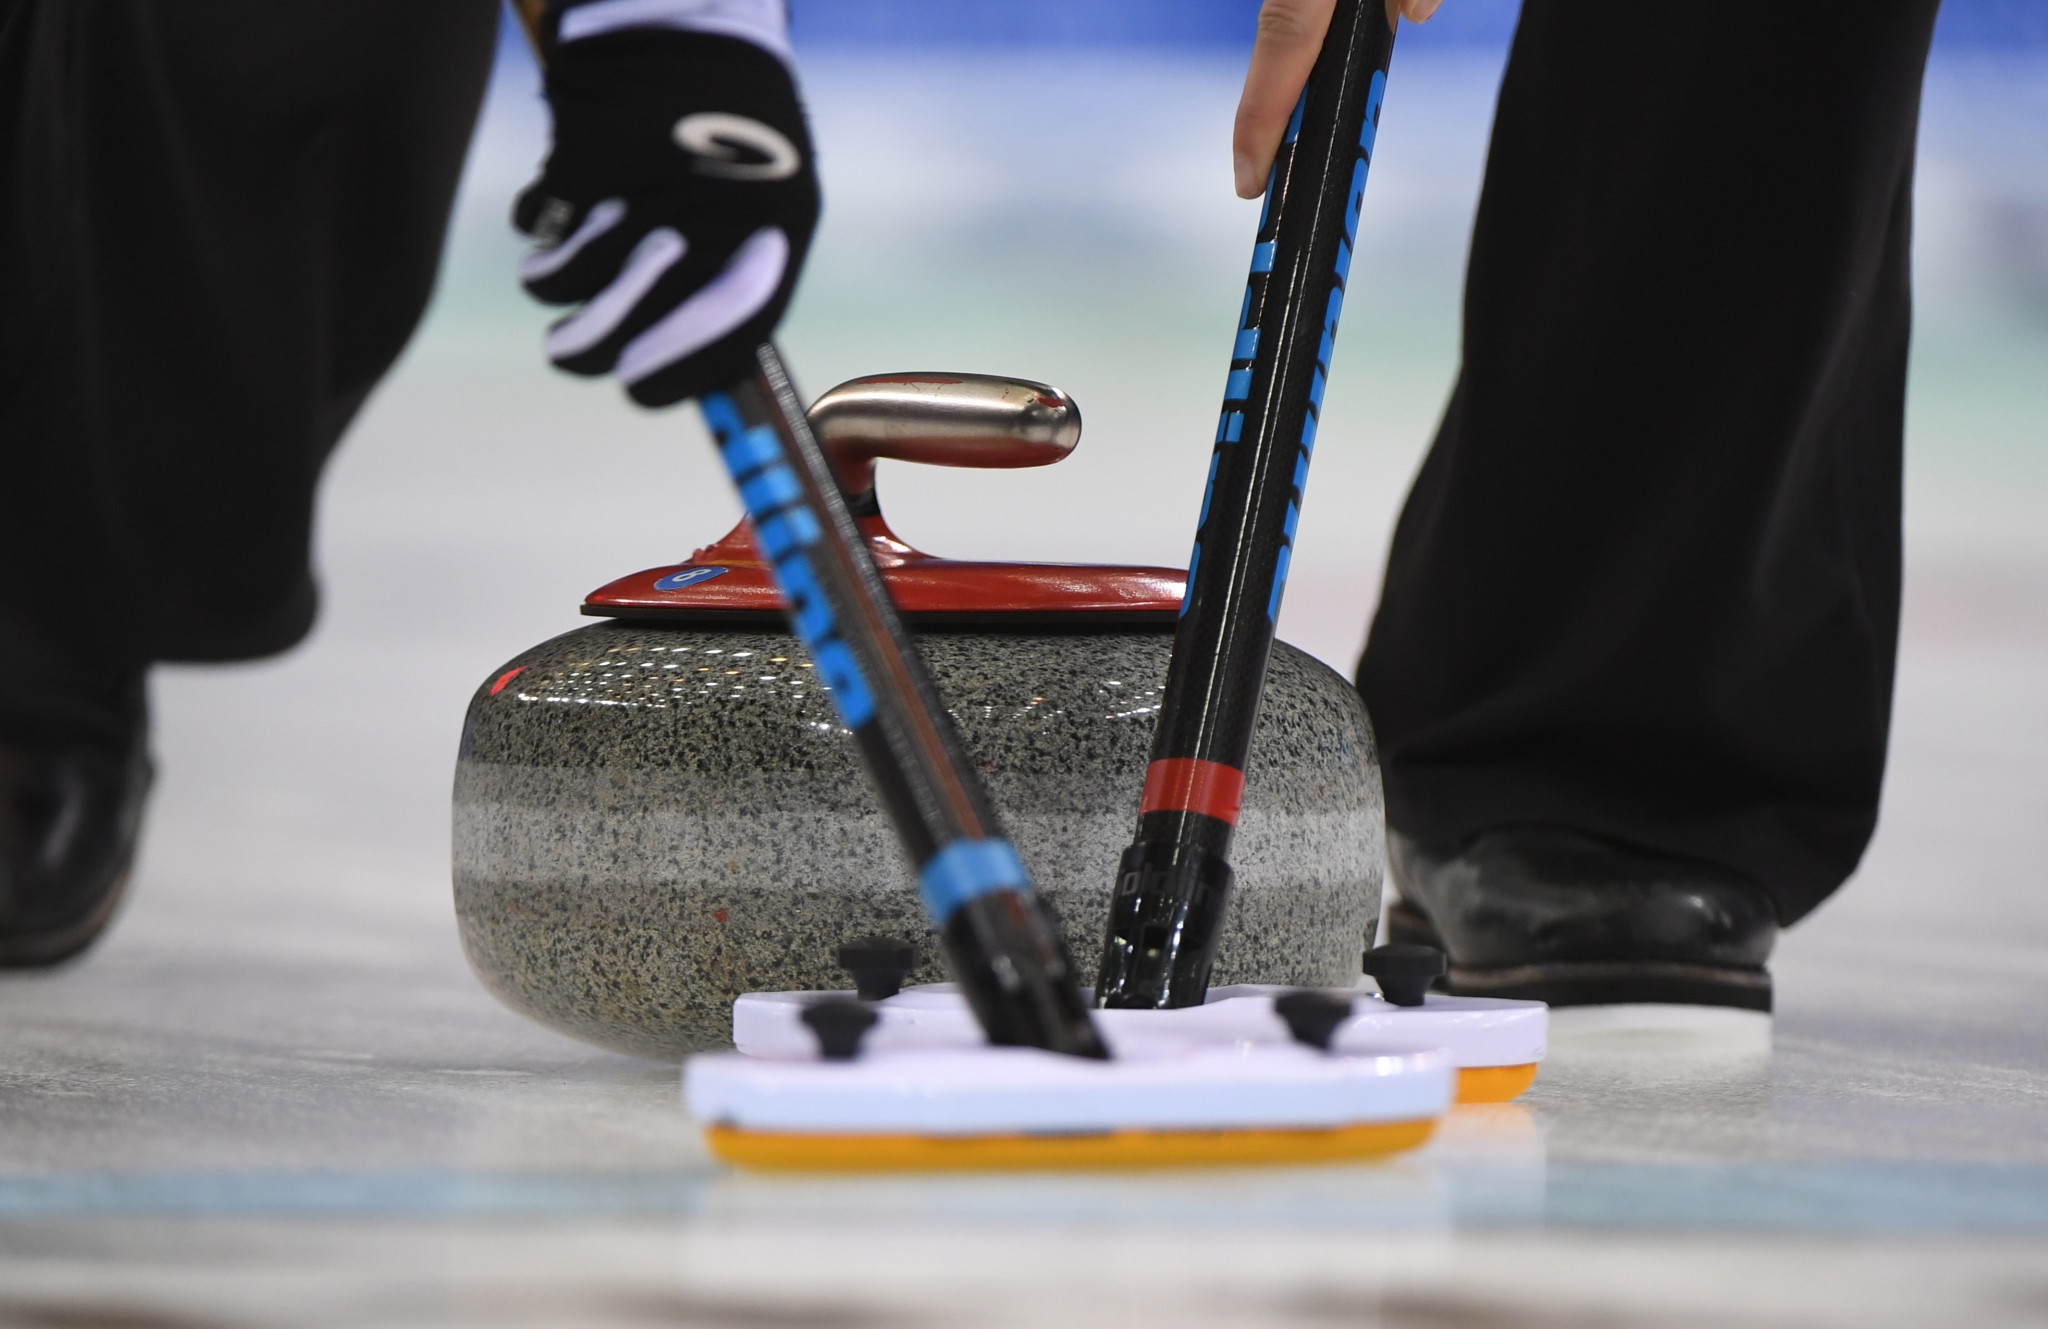 Former Canada Curling Association President Don Lewis dies aged 85